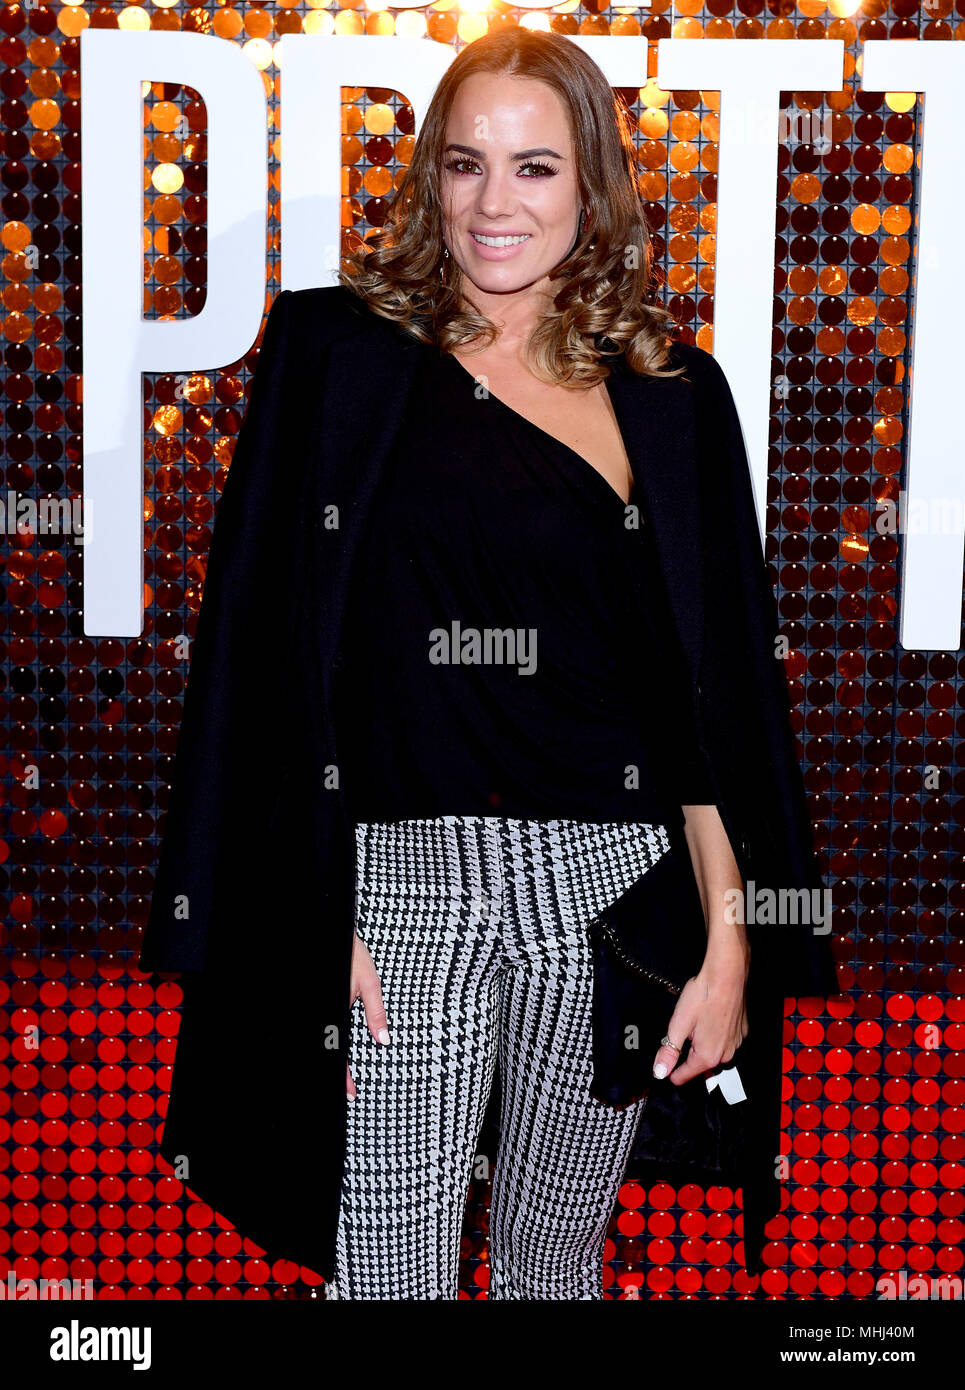 Emma Conybeare attending the special screening of I Feel Pretty held at the Picturehouse Central, Piccadilly, London. - Stock Image